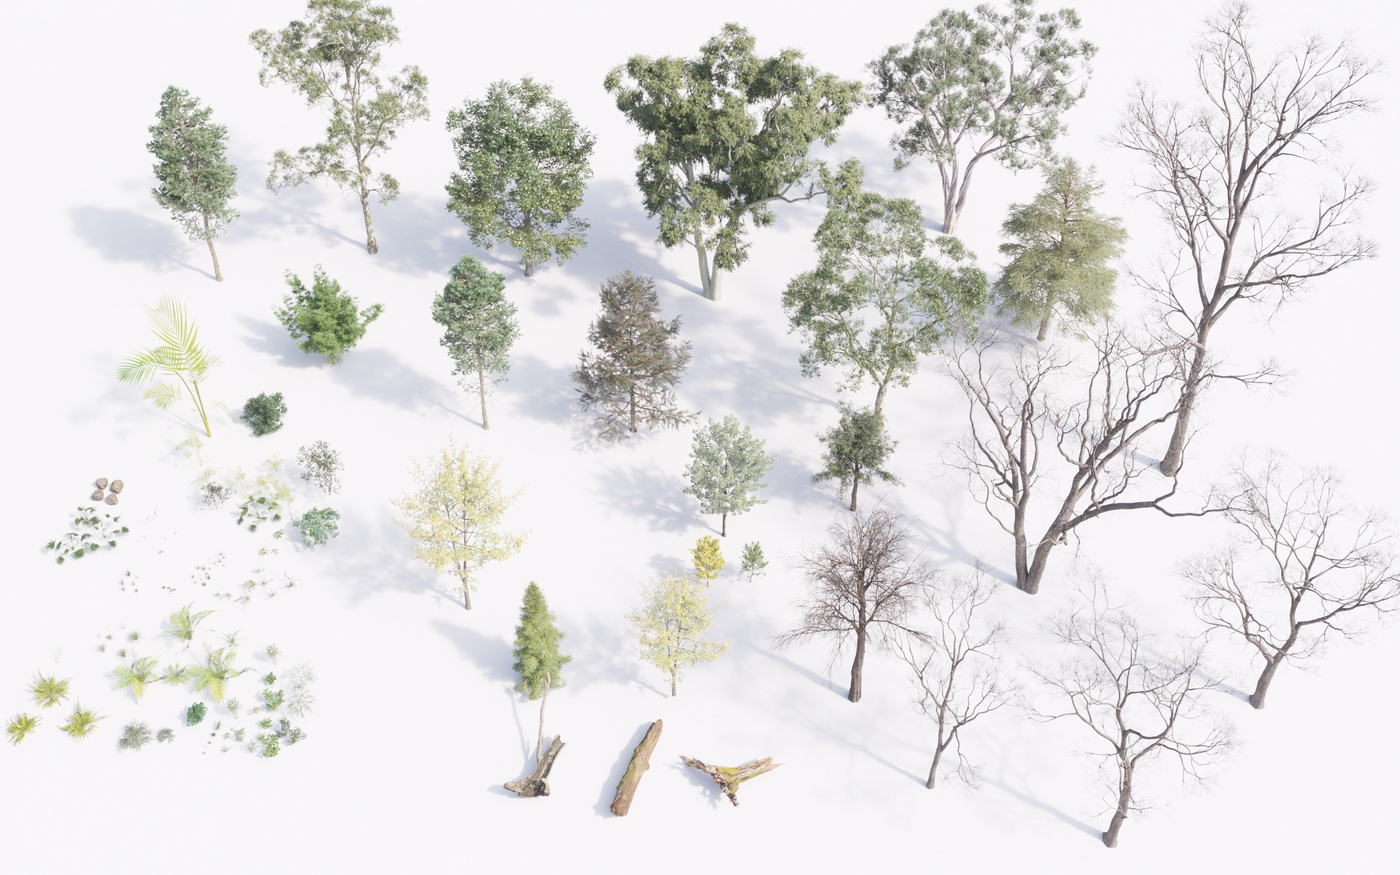 woods visdev image nature 3d scattering library